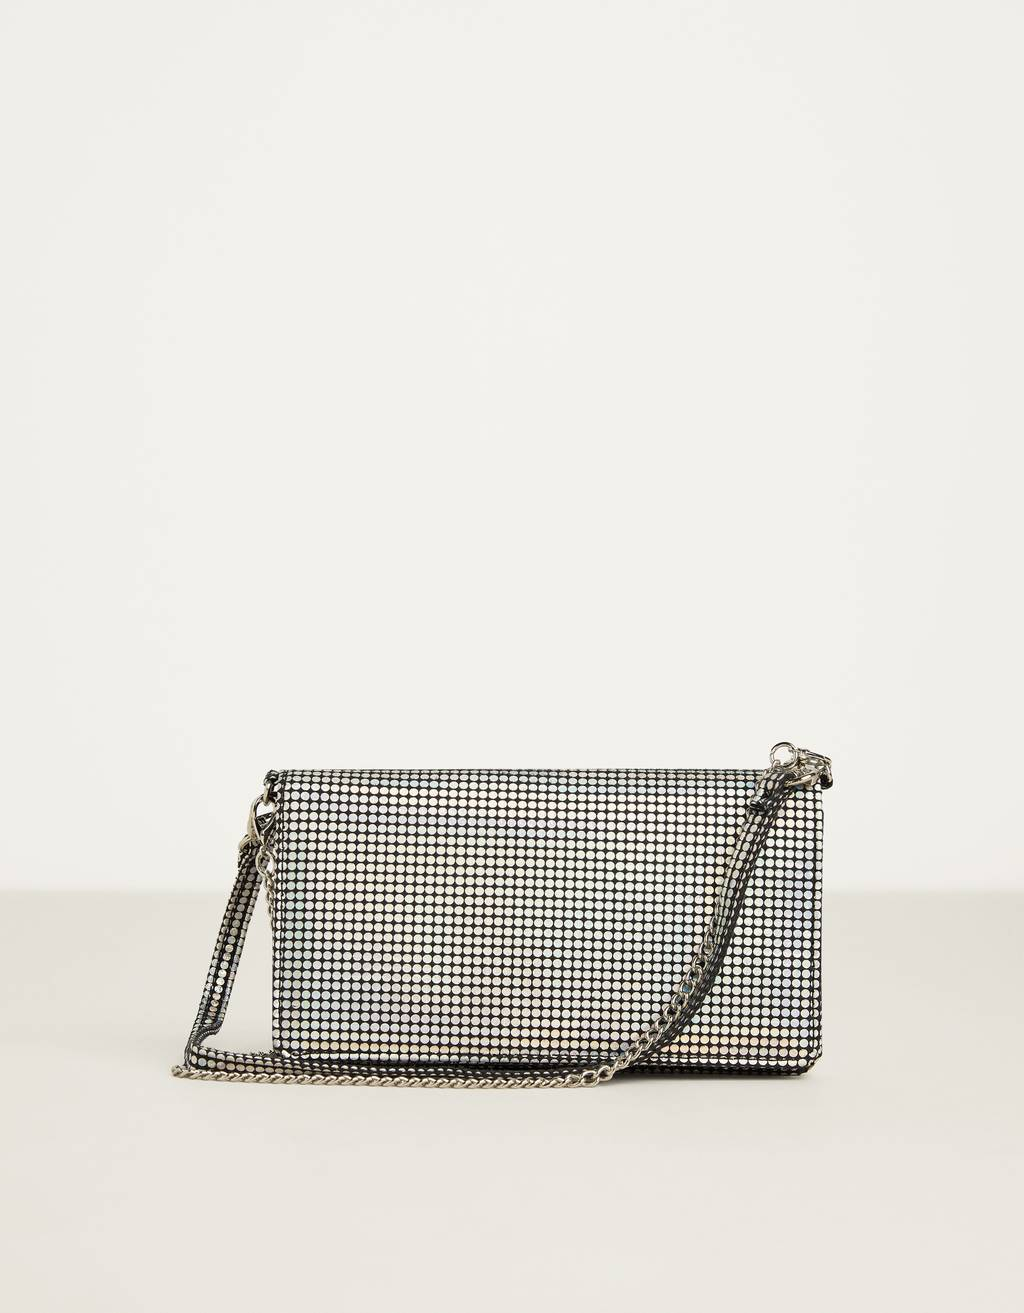 Iridescent silver handbag